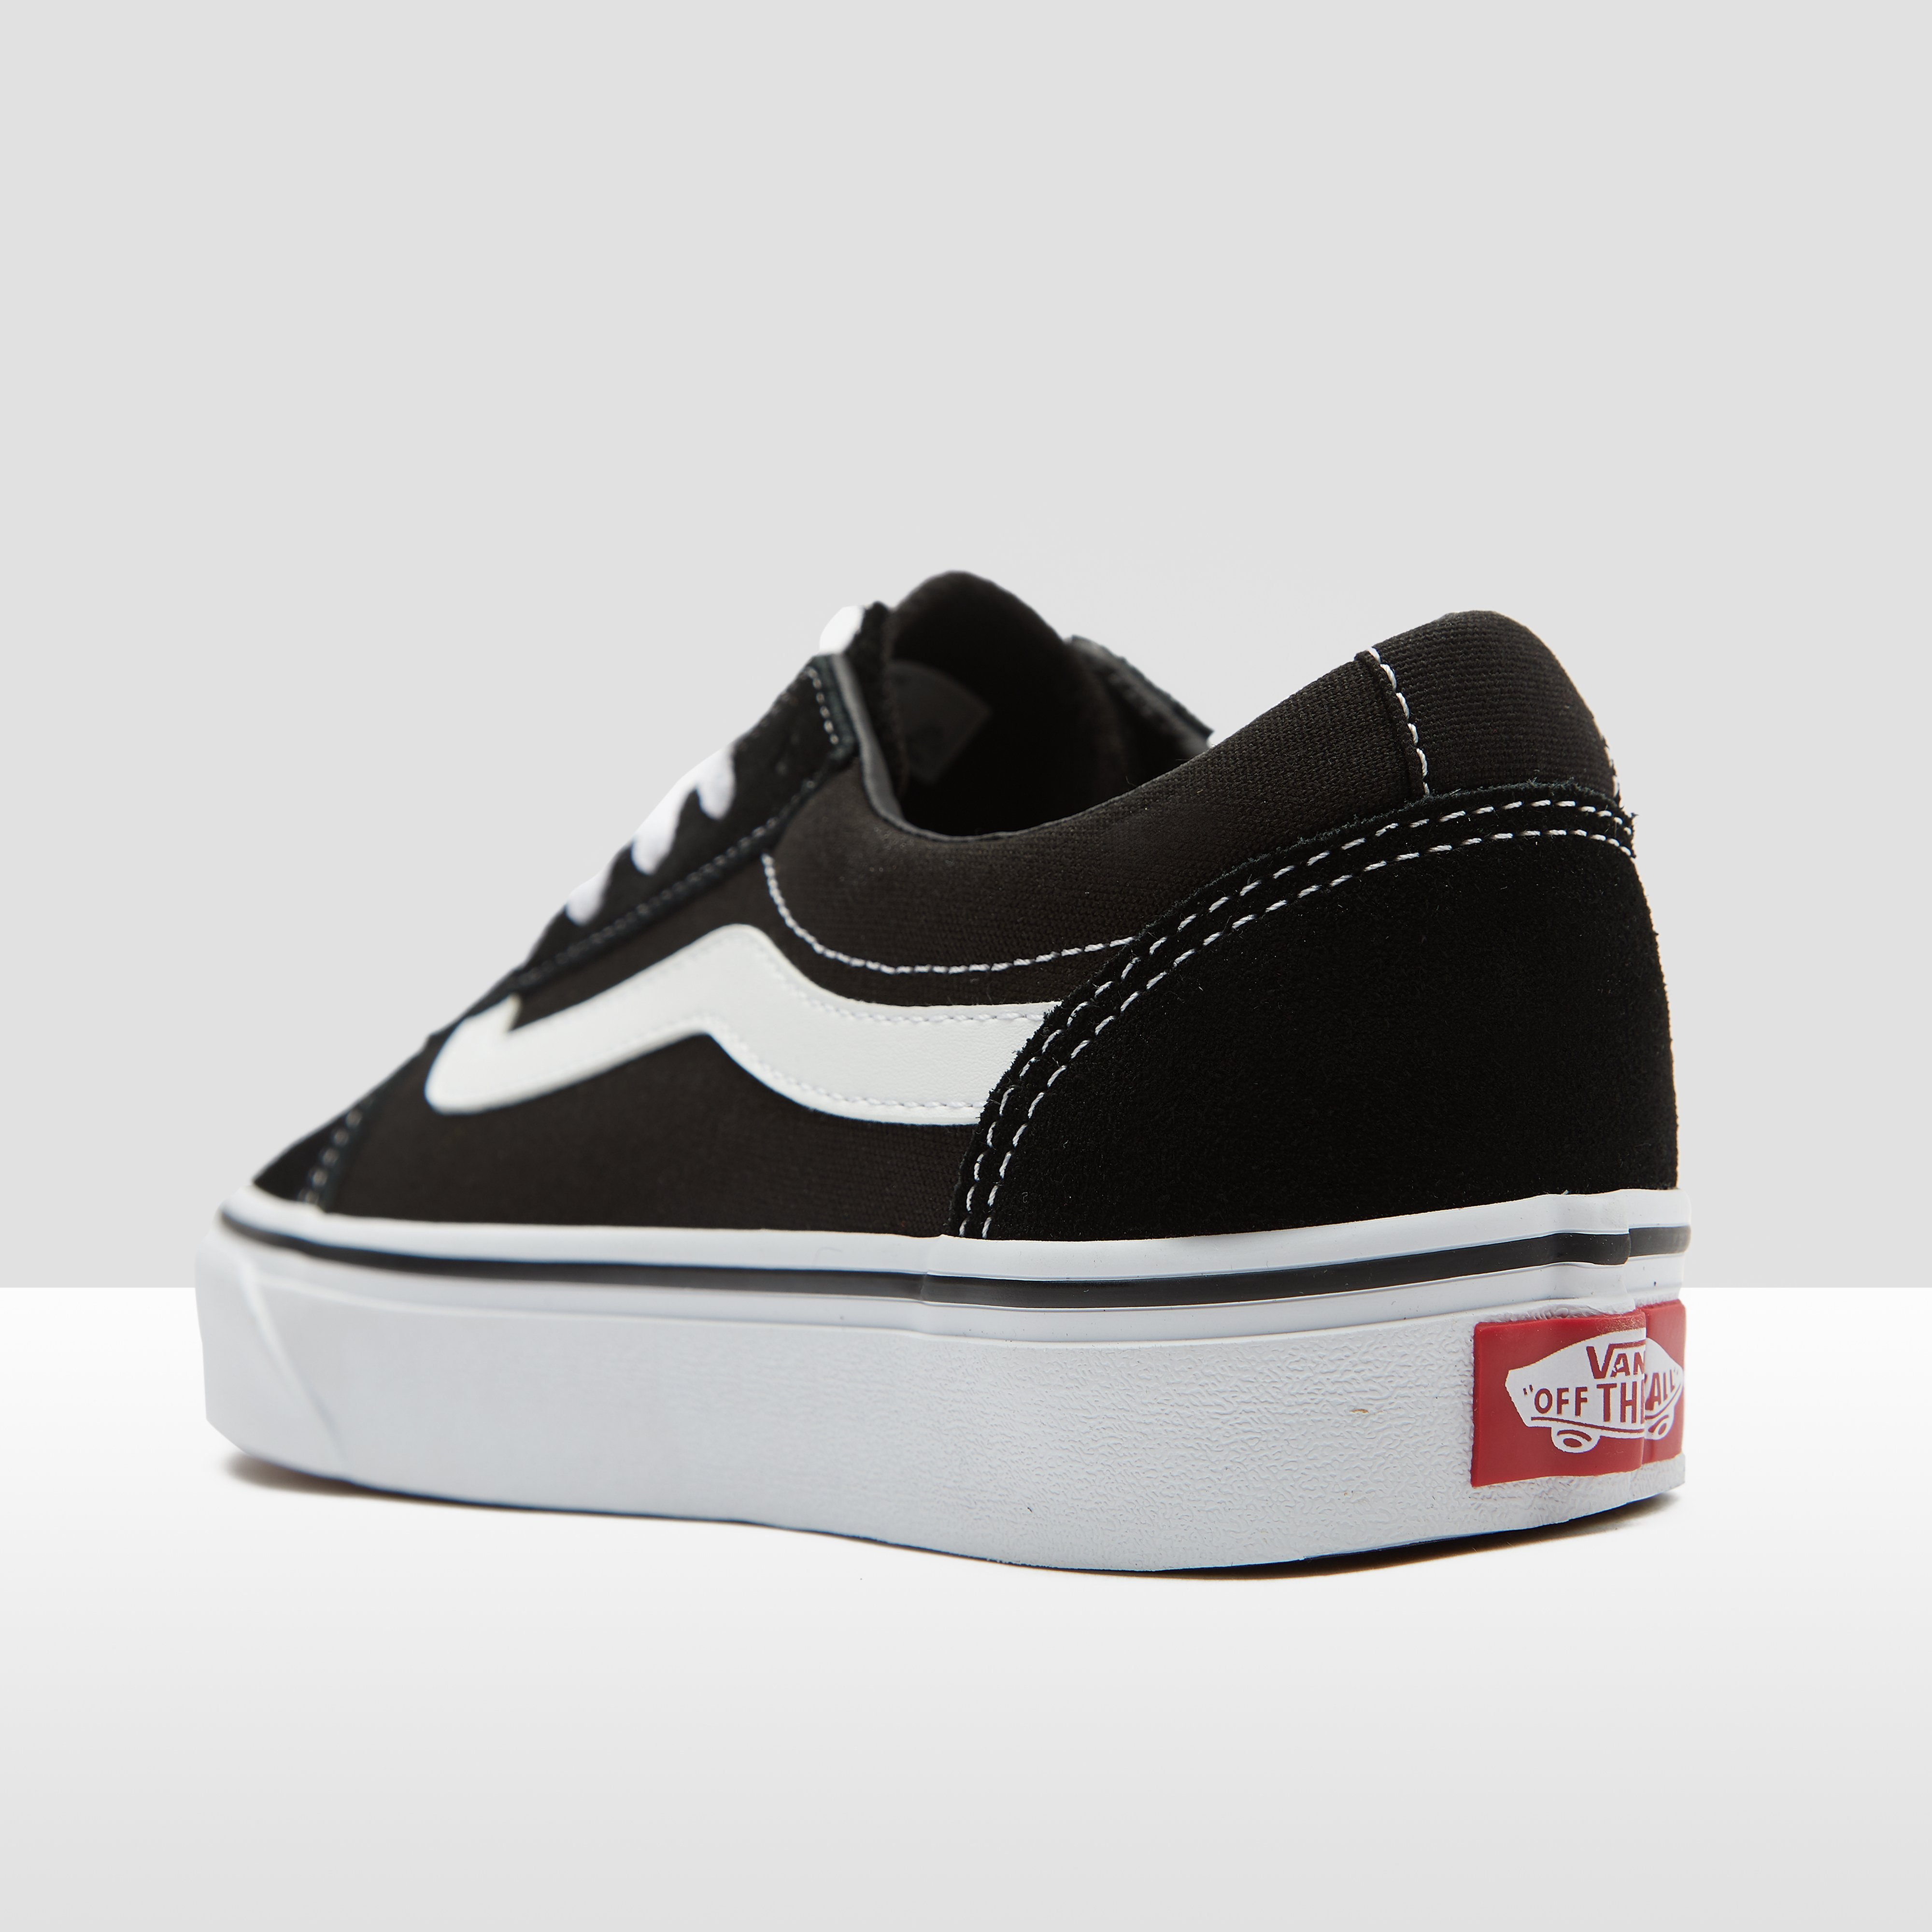 VANS WARD SNEAKERS ZWART/WIT DAMES